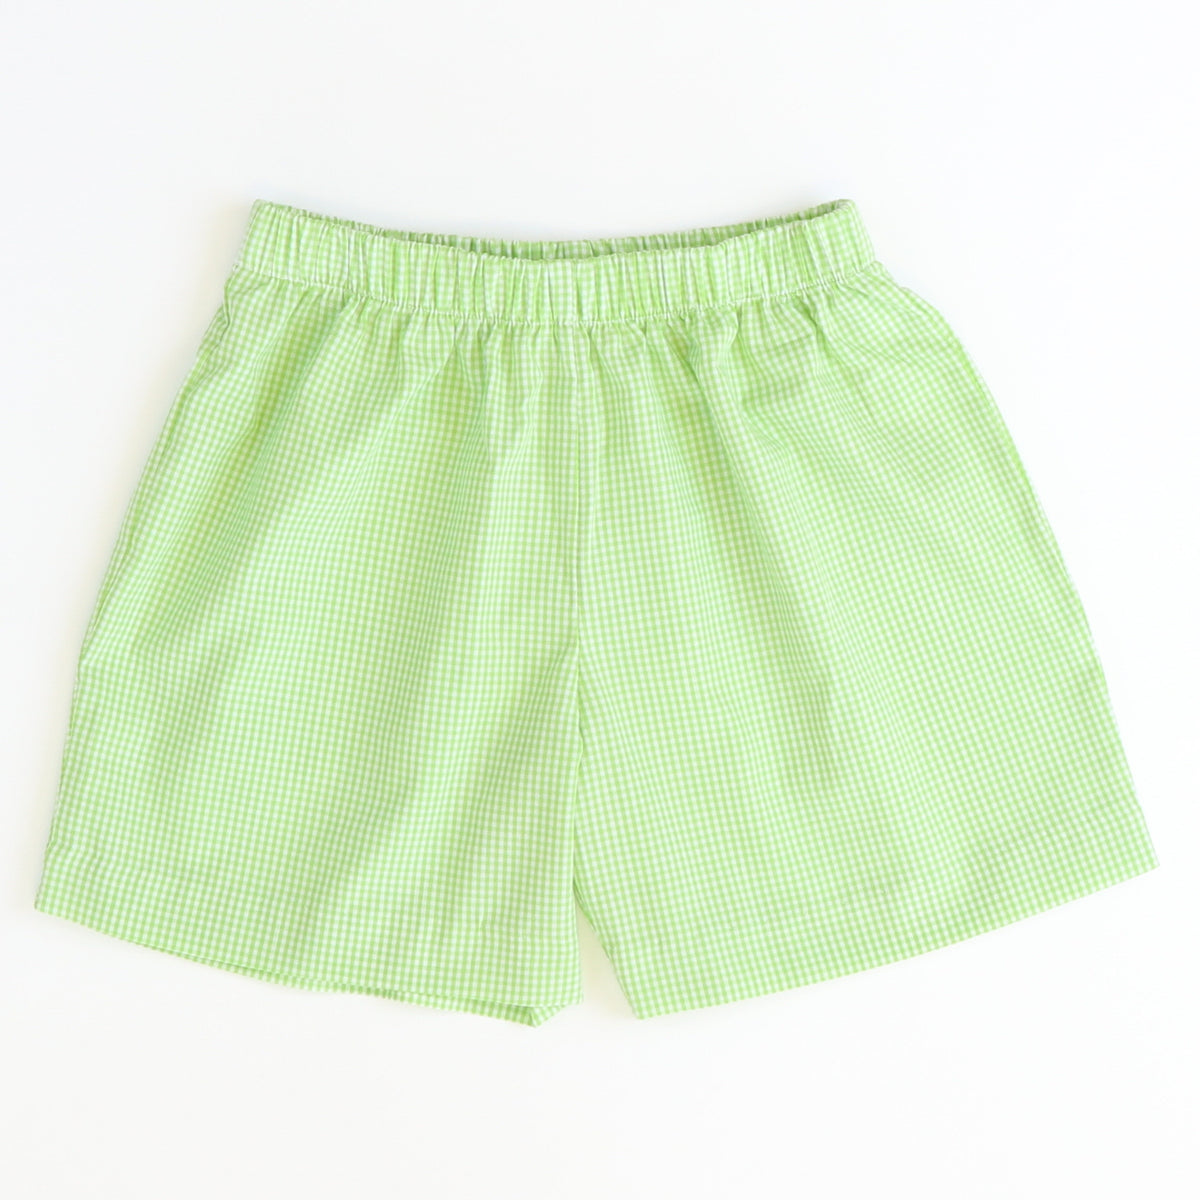 Signature Shorts - Green Check